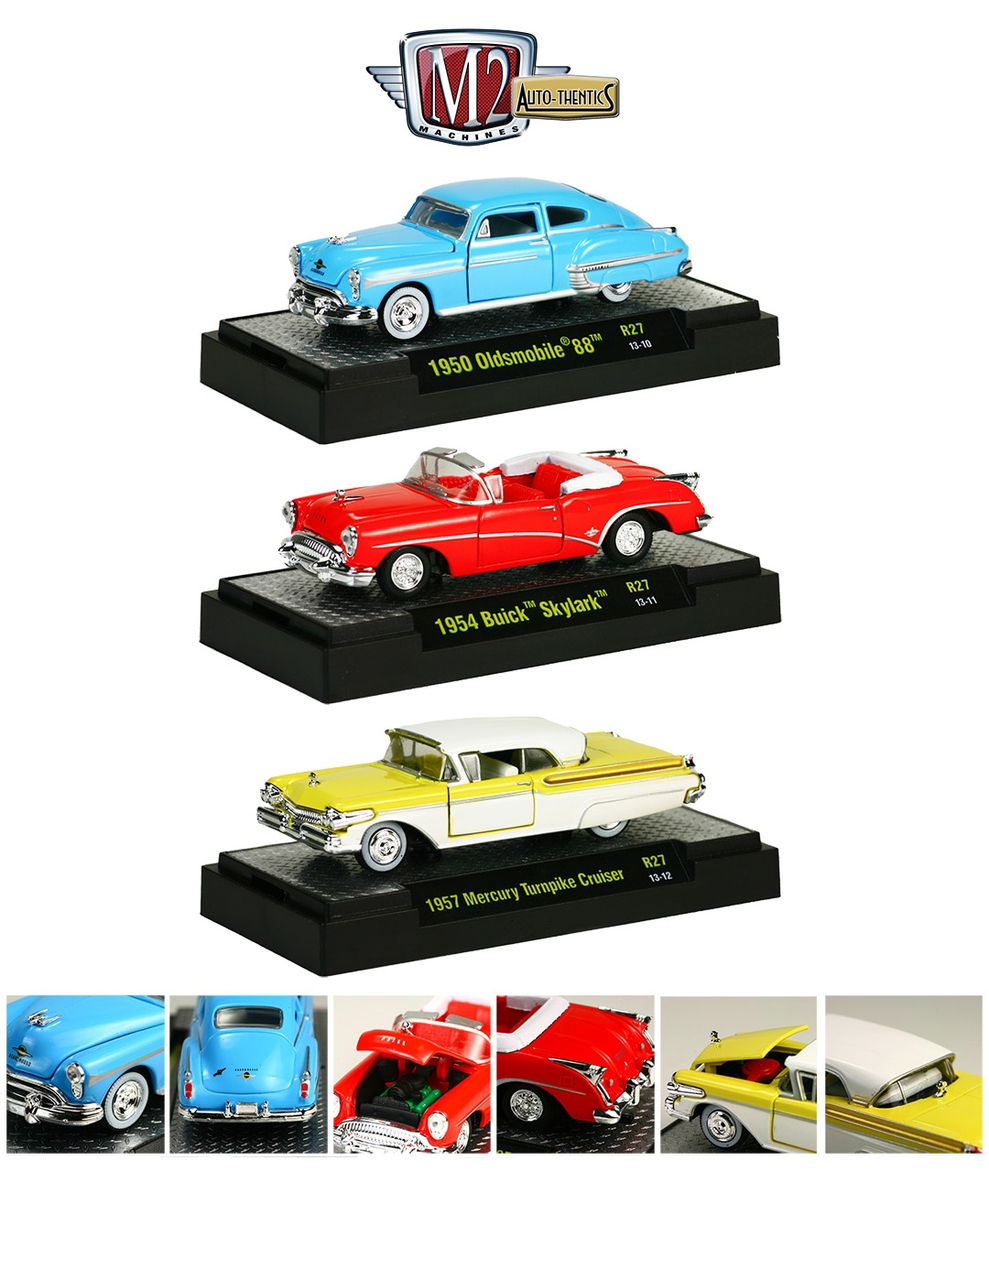 Auto Thentics 3 Cars Set Release 27 WITH CASES Diecast Models 1/64 by M2 Machines